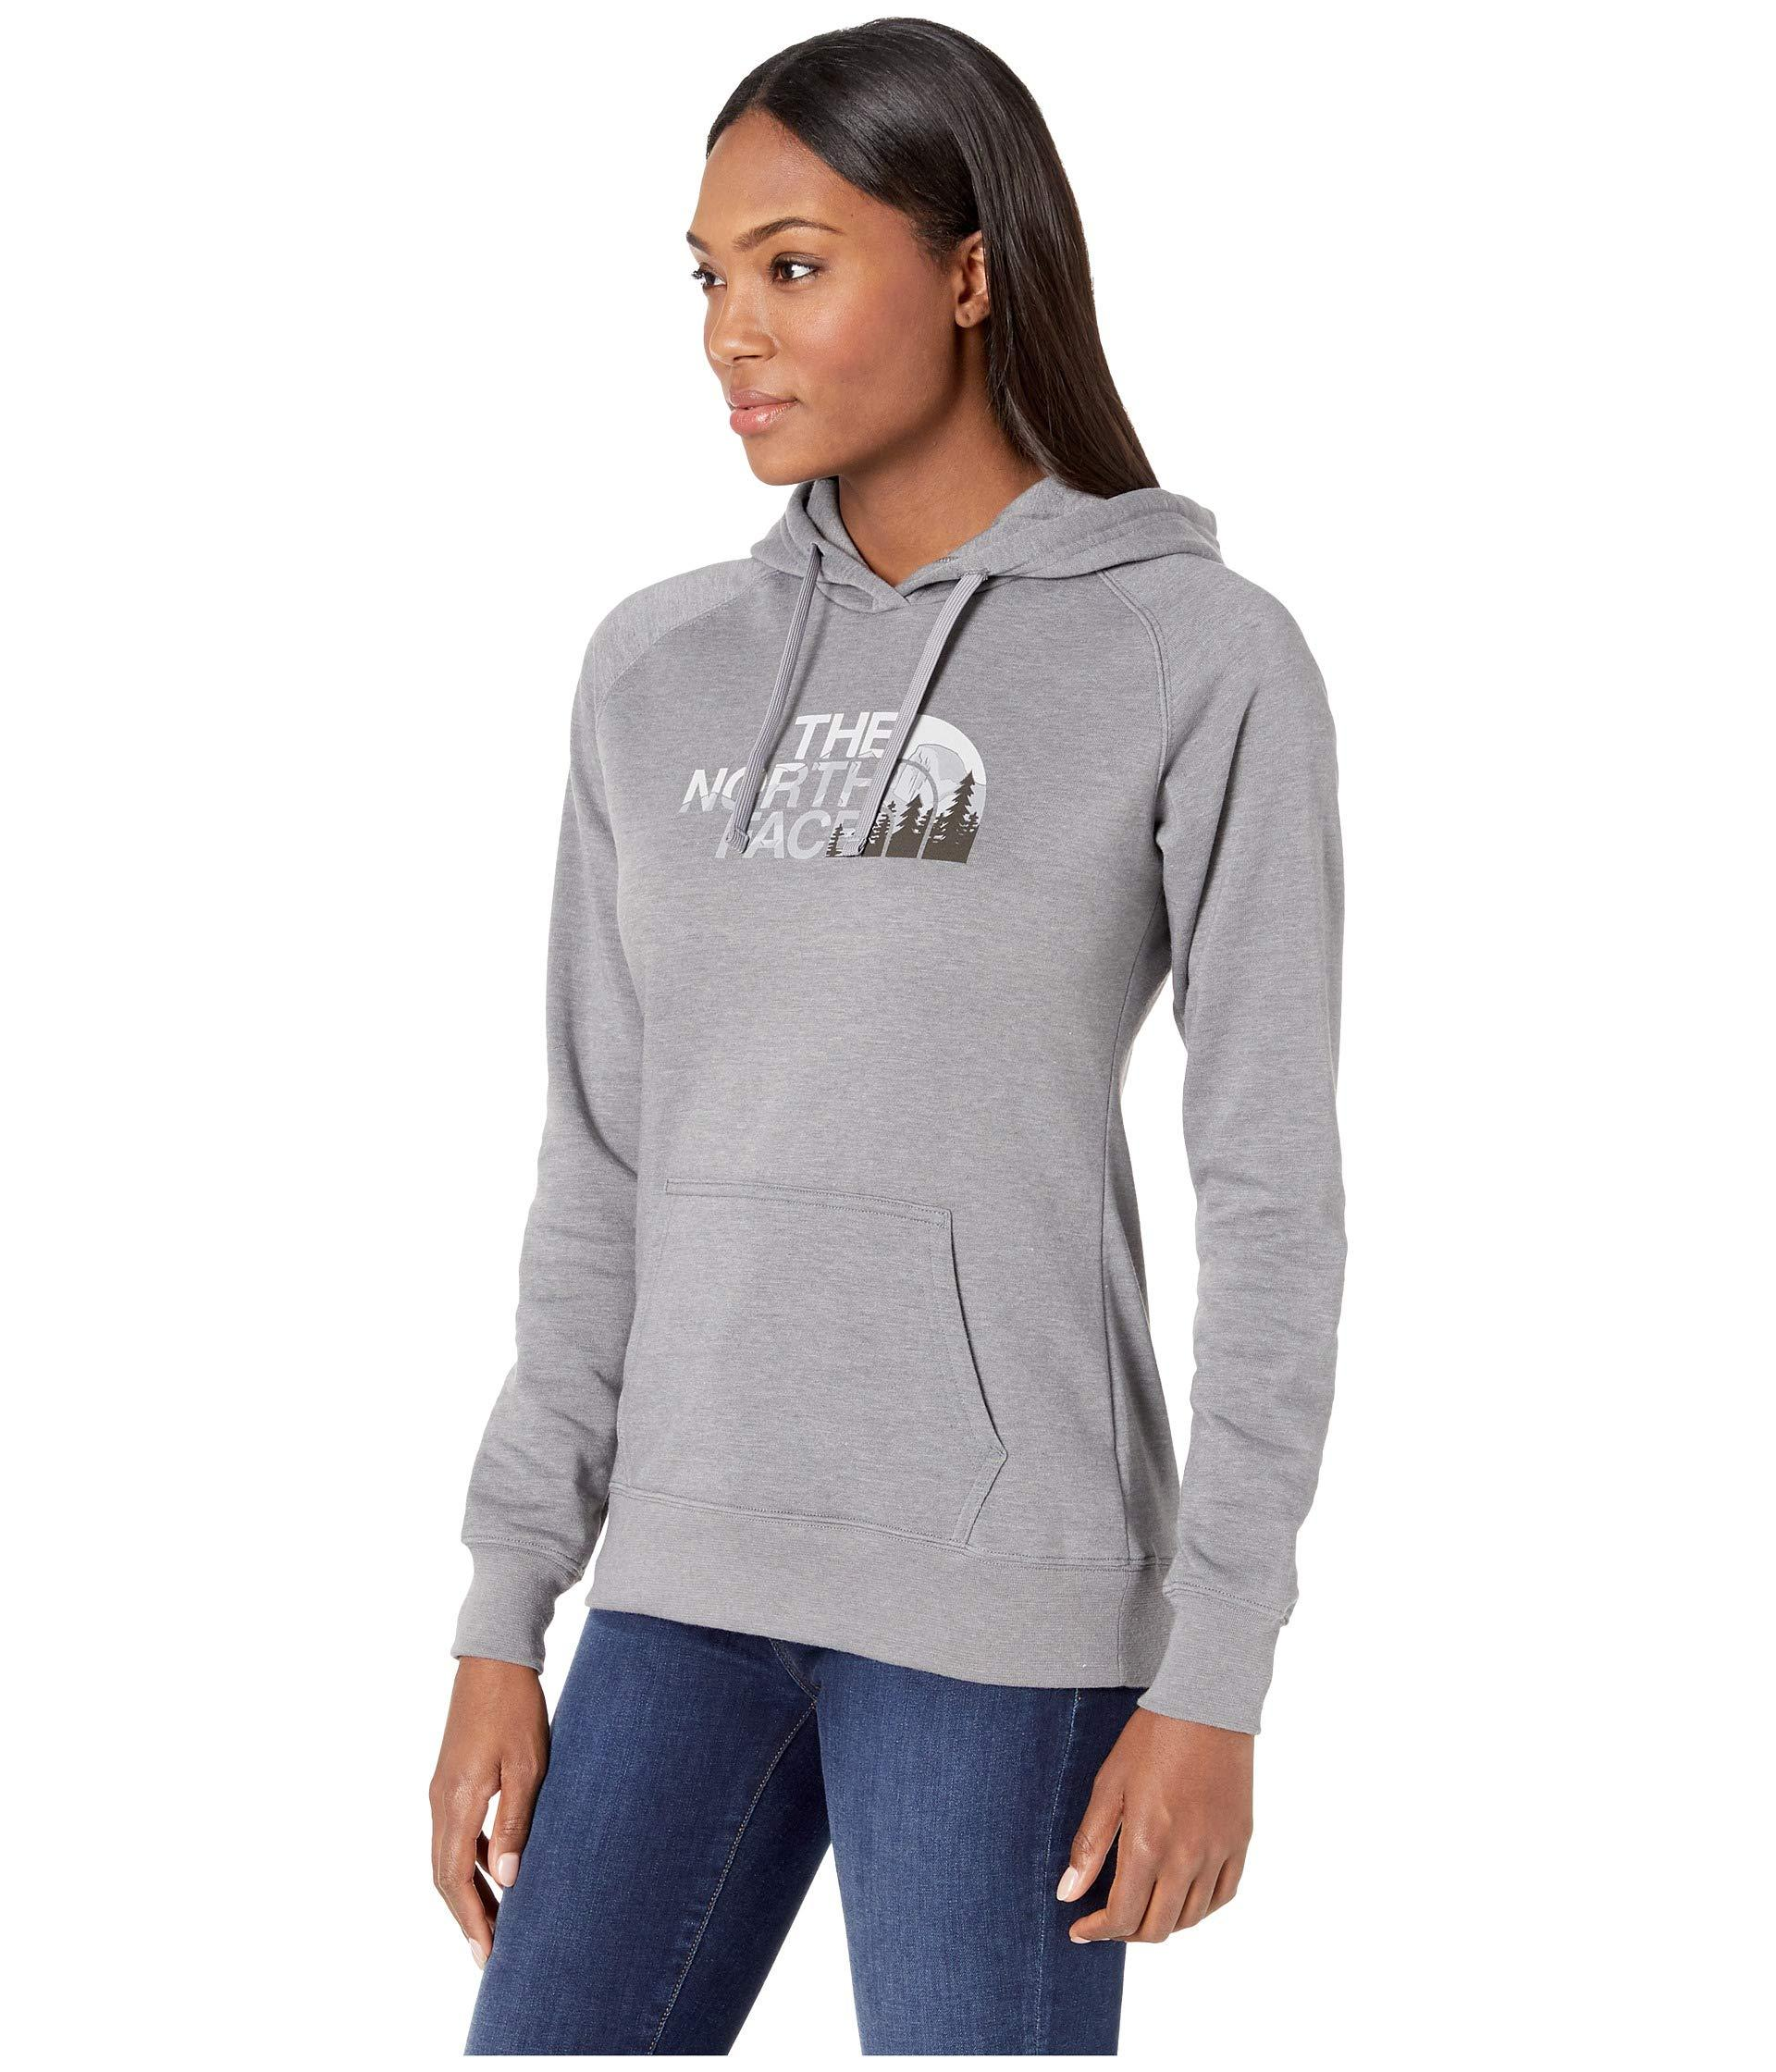 635ec2400 Lyst - The North Face Half Dome Pullover Hoodie (tnf Medium Grey ...